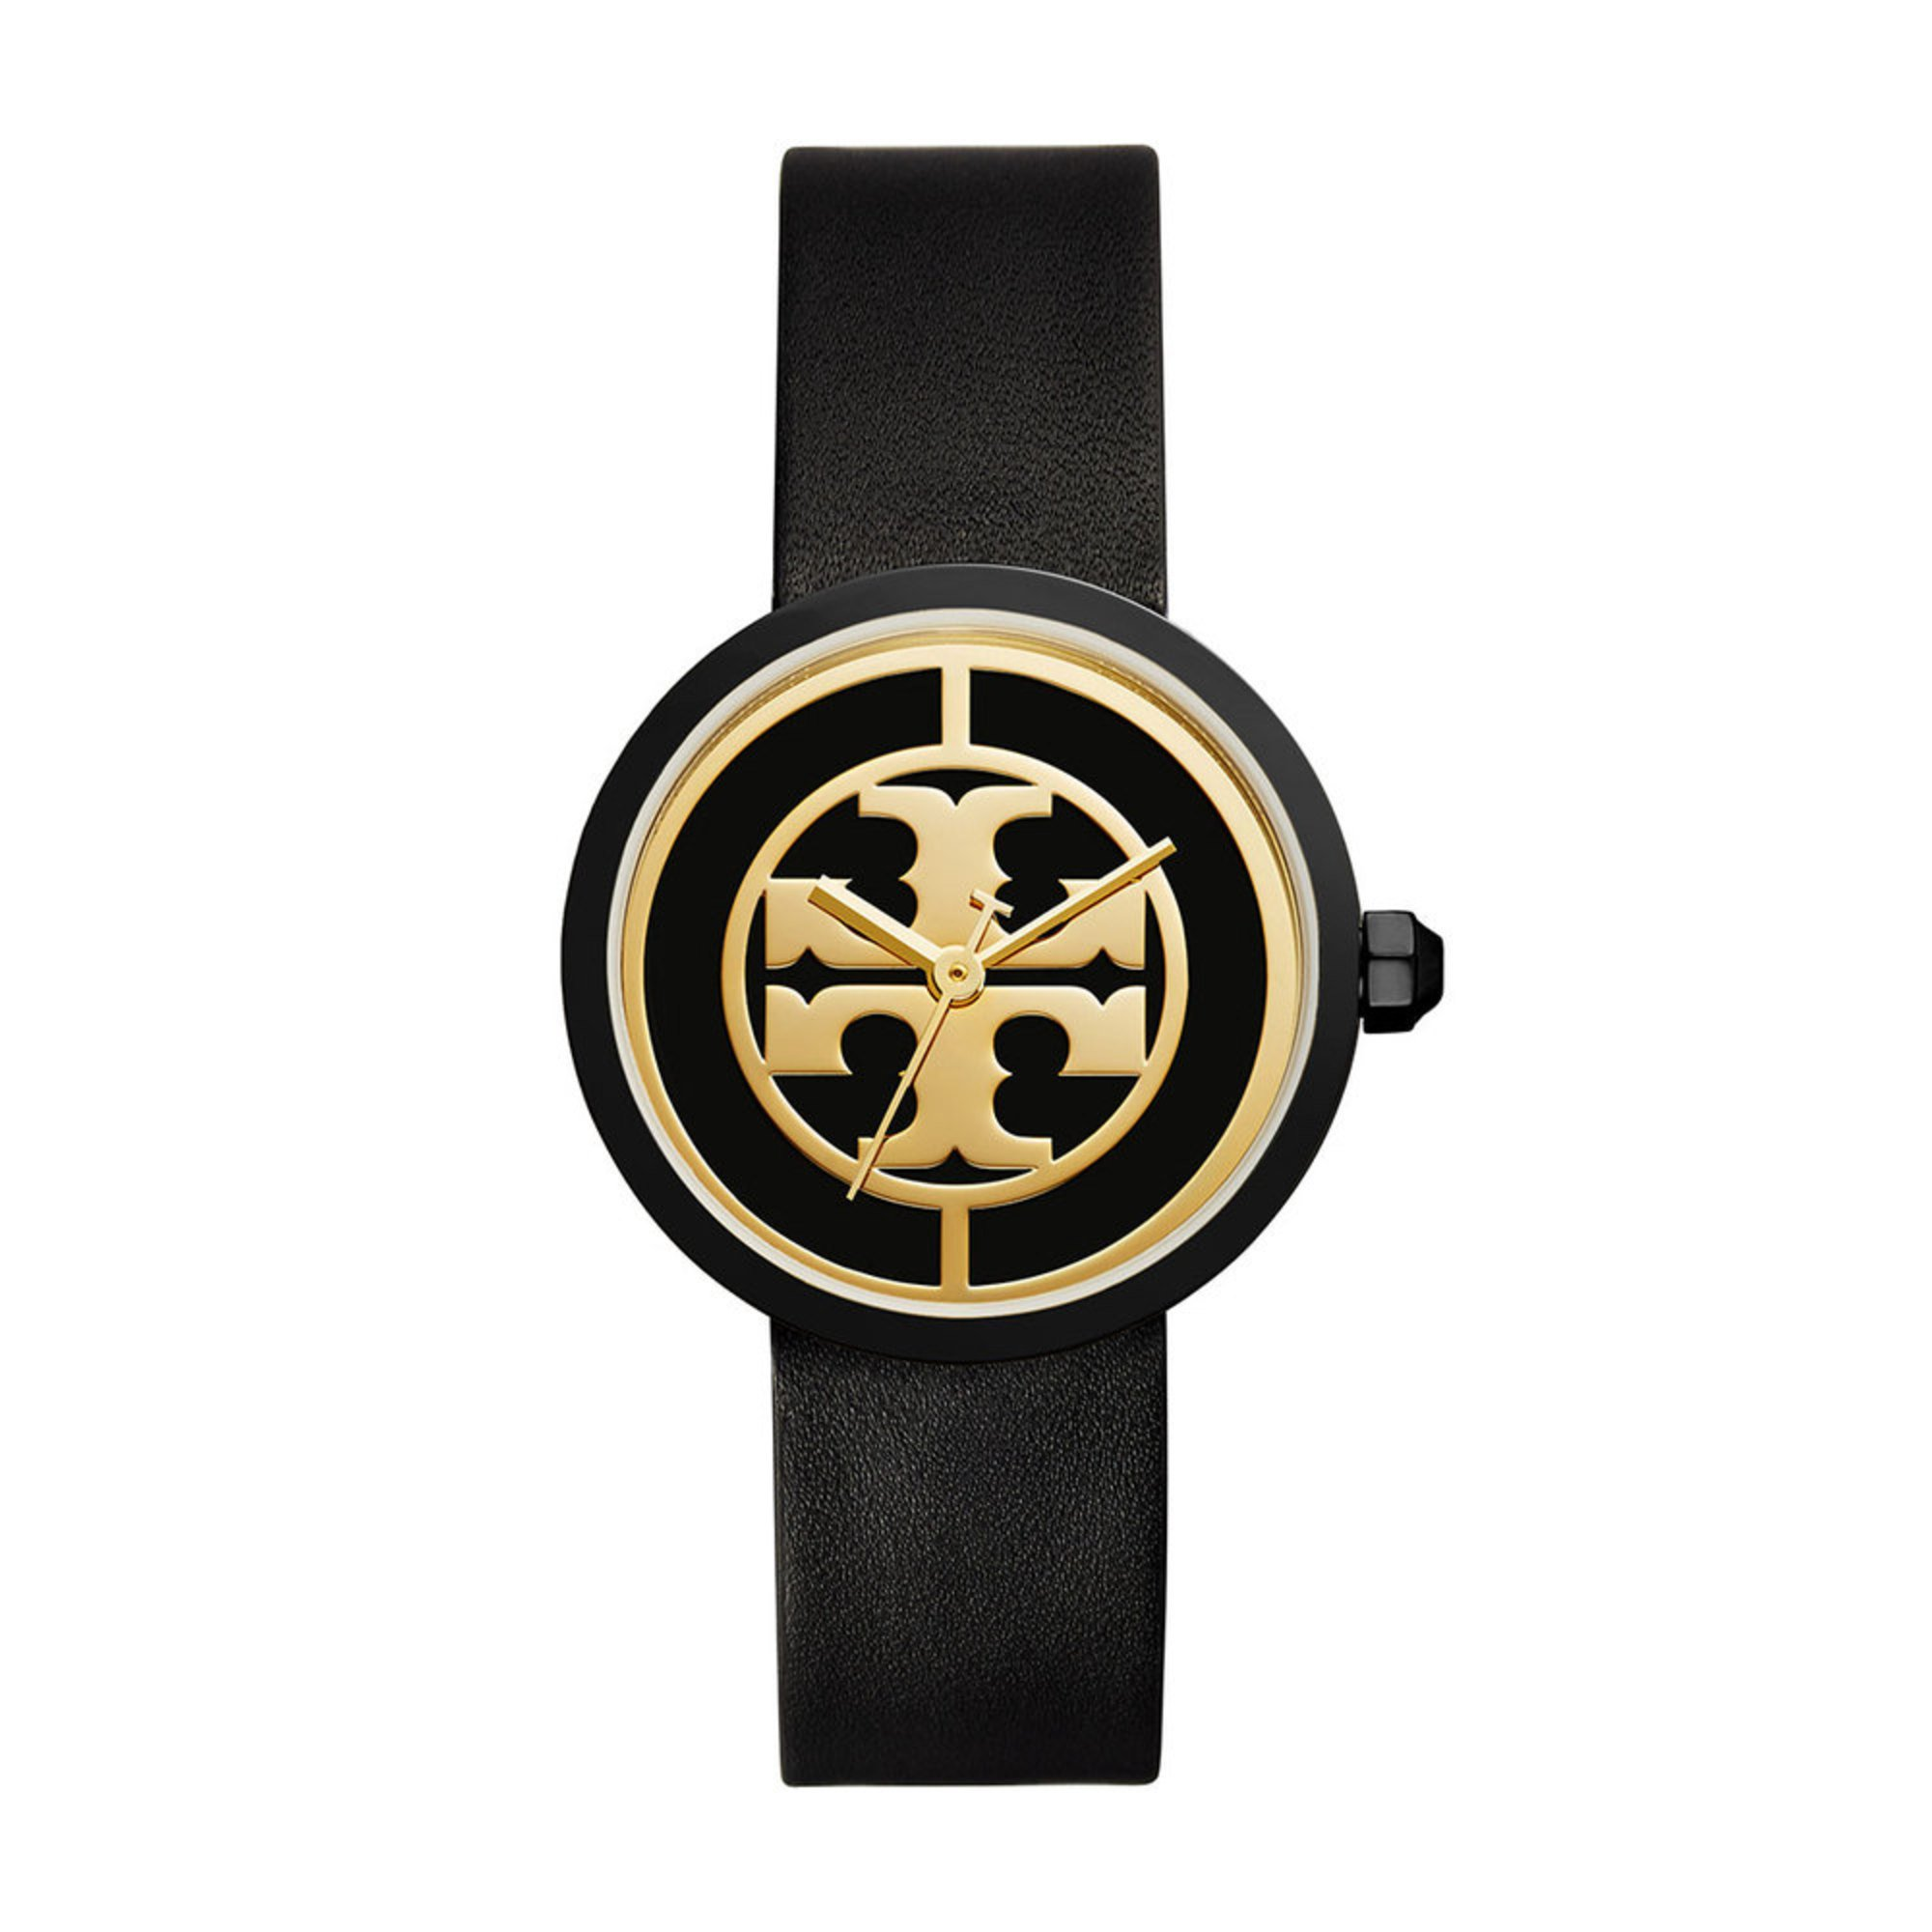 771e6ae865ca Tory Burch Women's Reva Gold Black Black Leather Strap Watch, 36mm ...